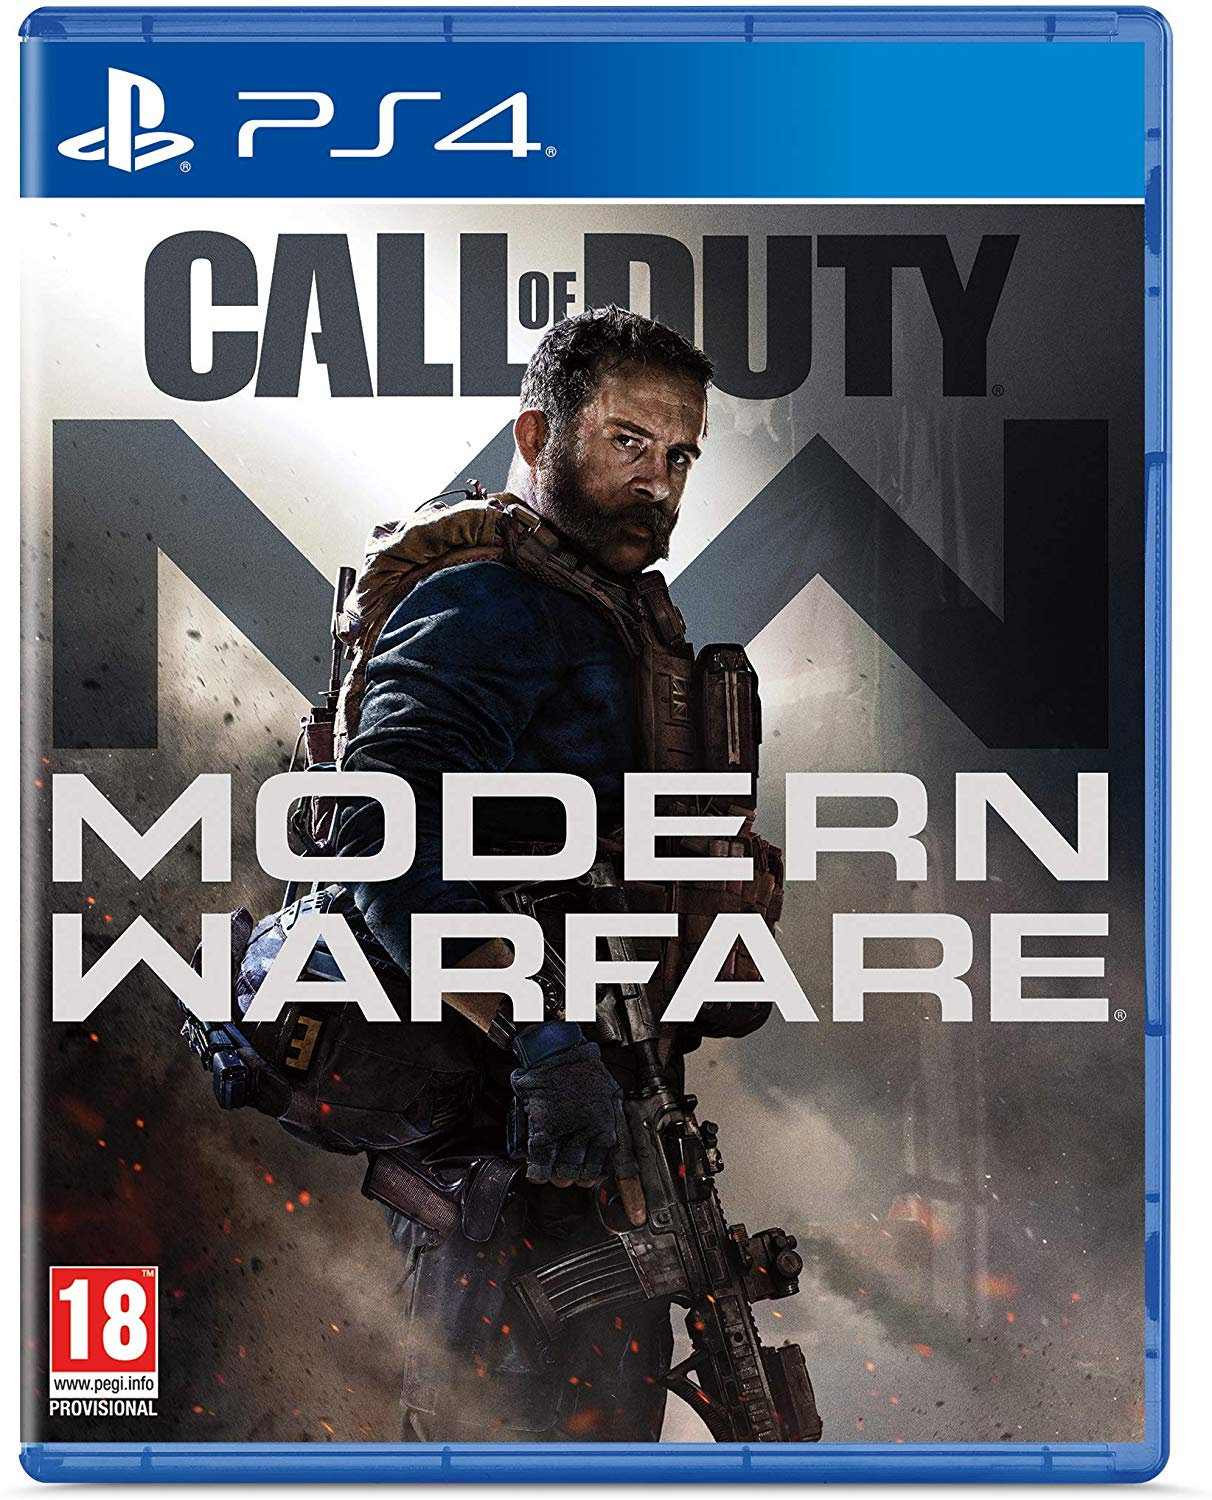 Call of Duty Modern Warfare (2019) - PlayStation 4 Játékok